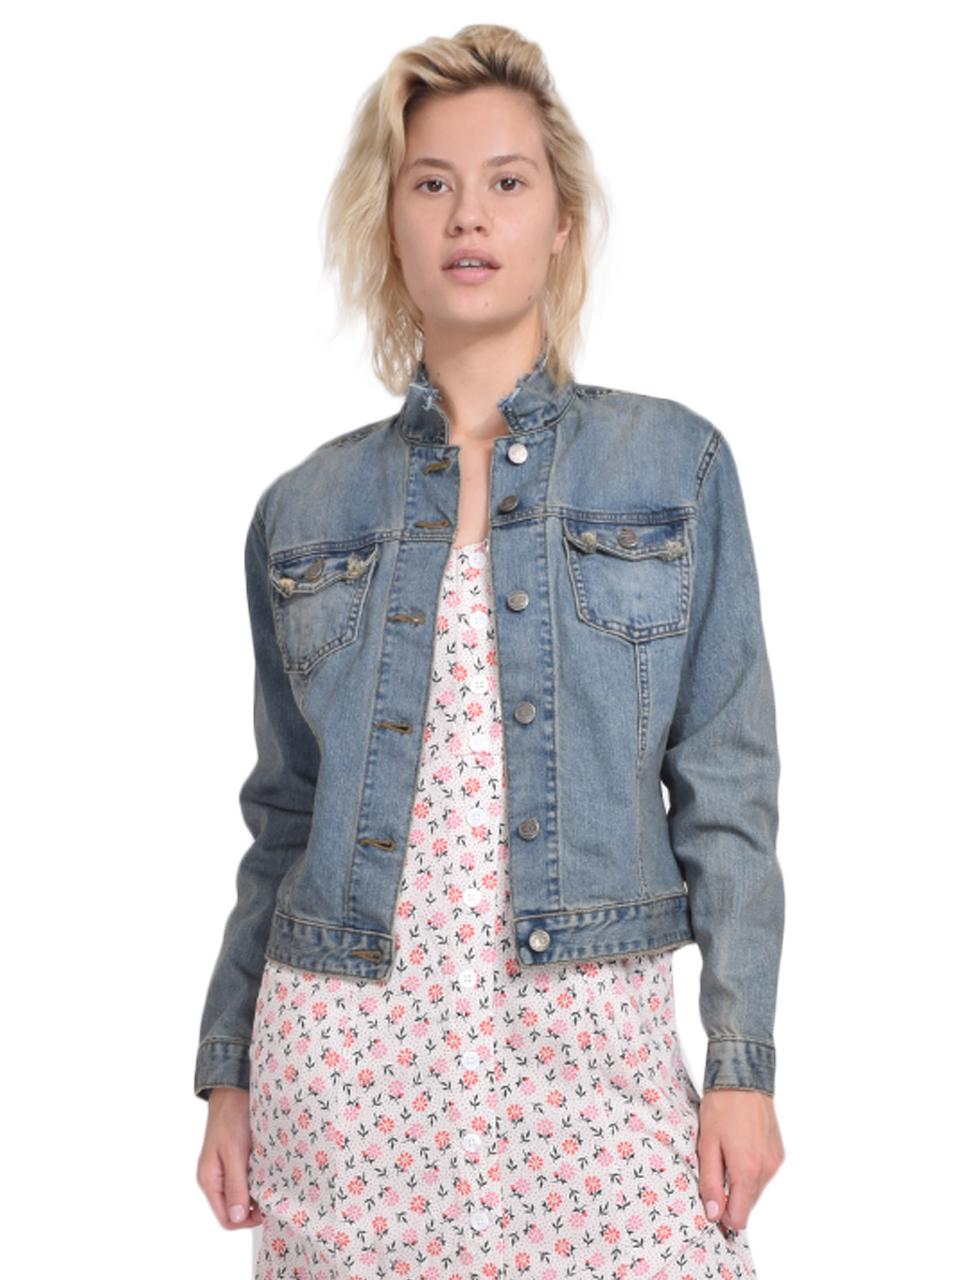 JET Cut Neck Jean Jacket Front View  X1https://cdn11.bigcommerce.com/s-3wu6n/products/33185/images/109663/146__12830.1590715750.244.365.jpg?c=2X2